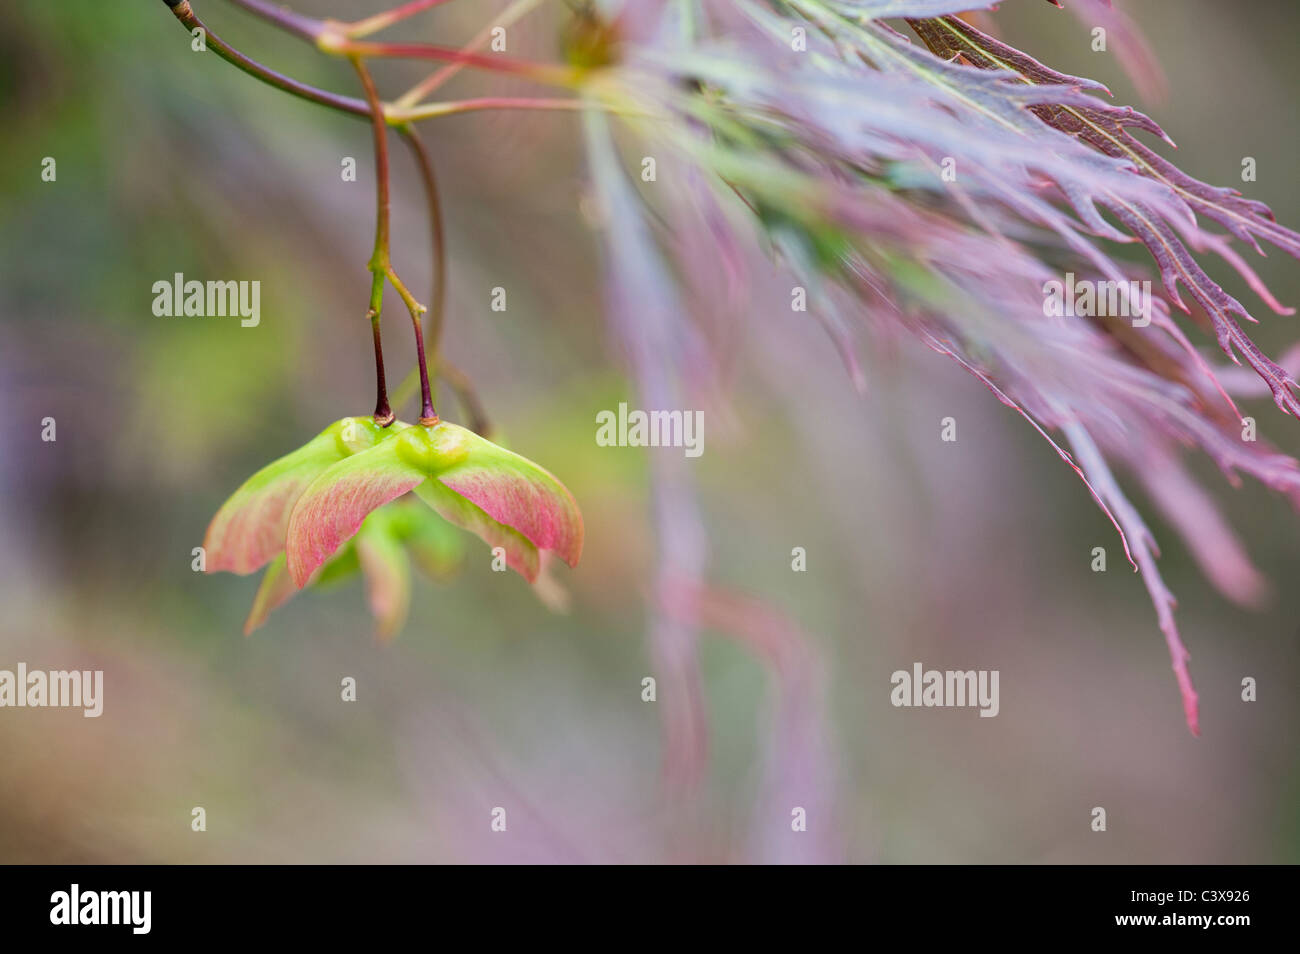 Seed Stock Photos Seed Stock Images Alamy